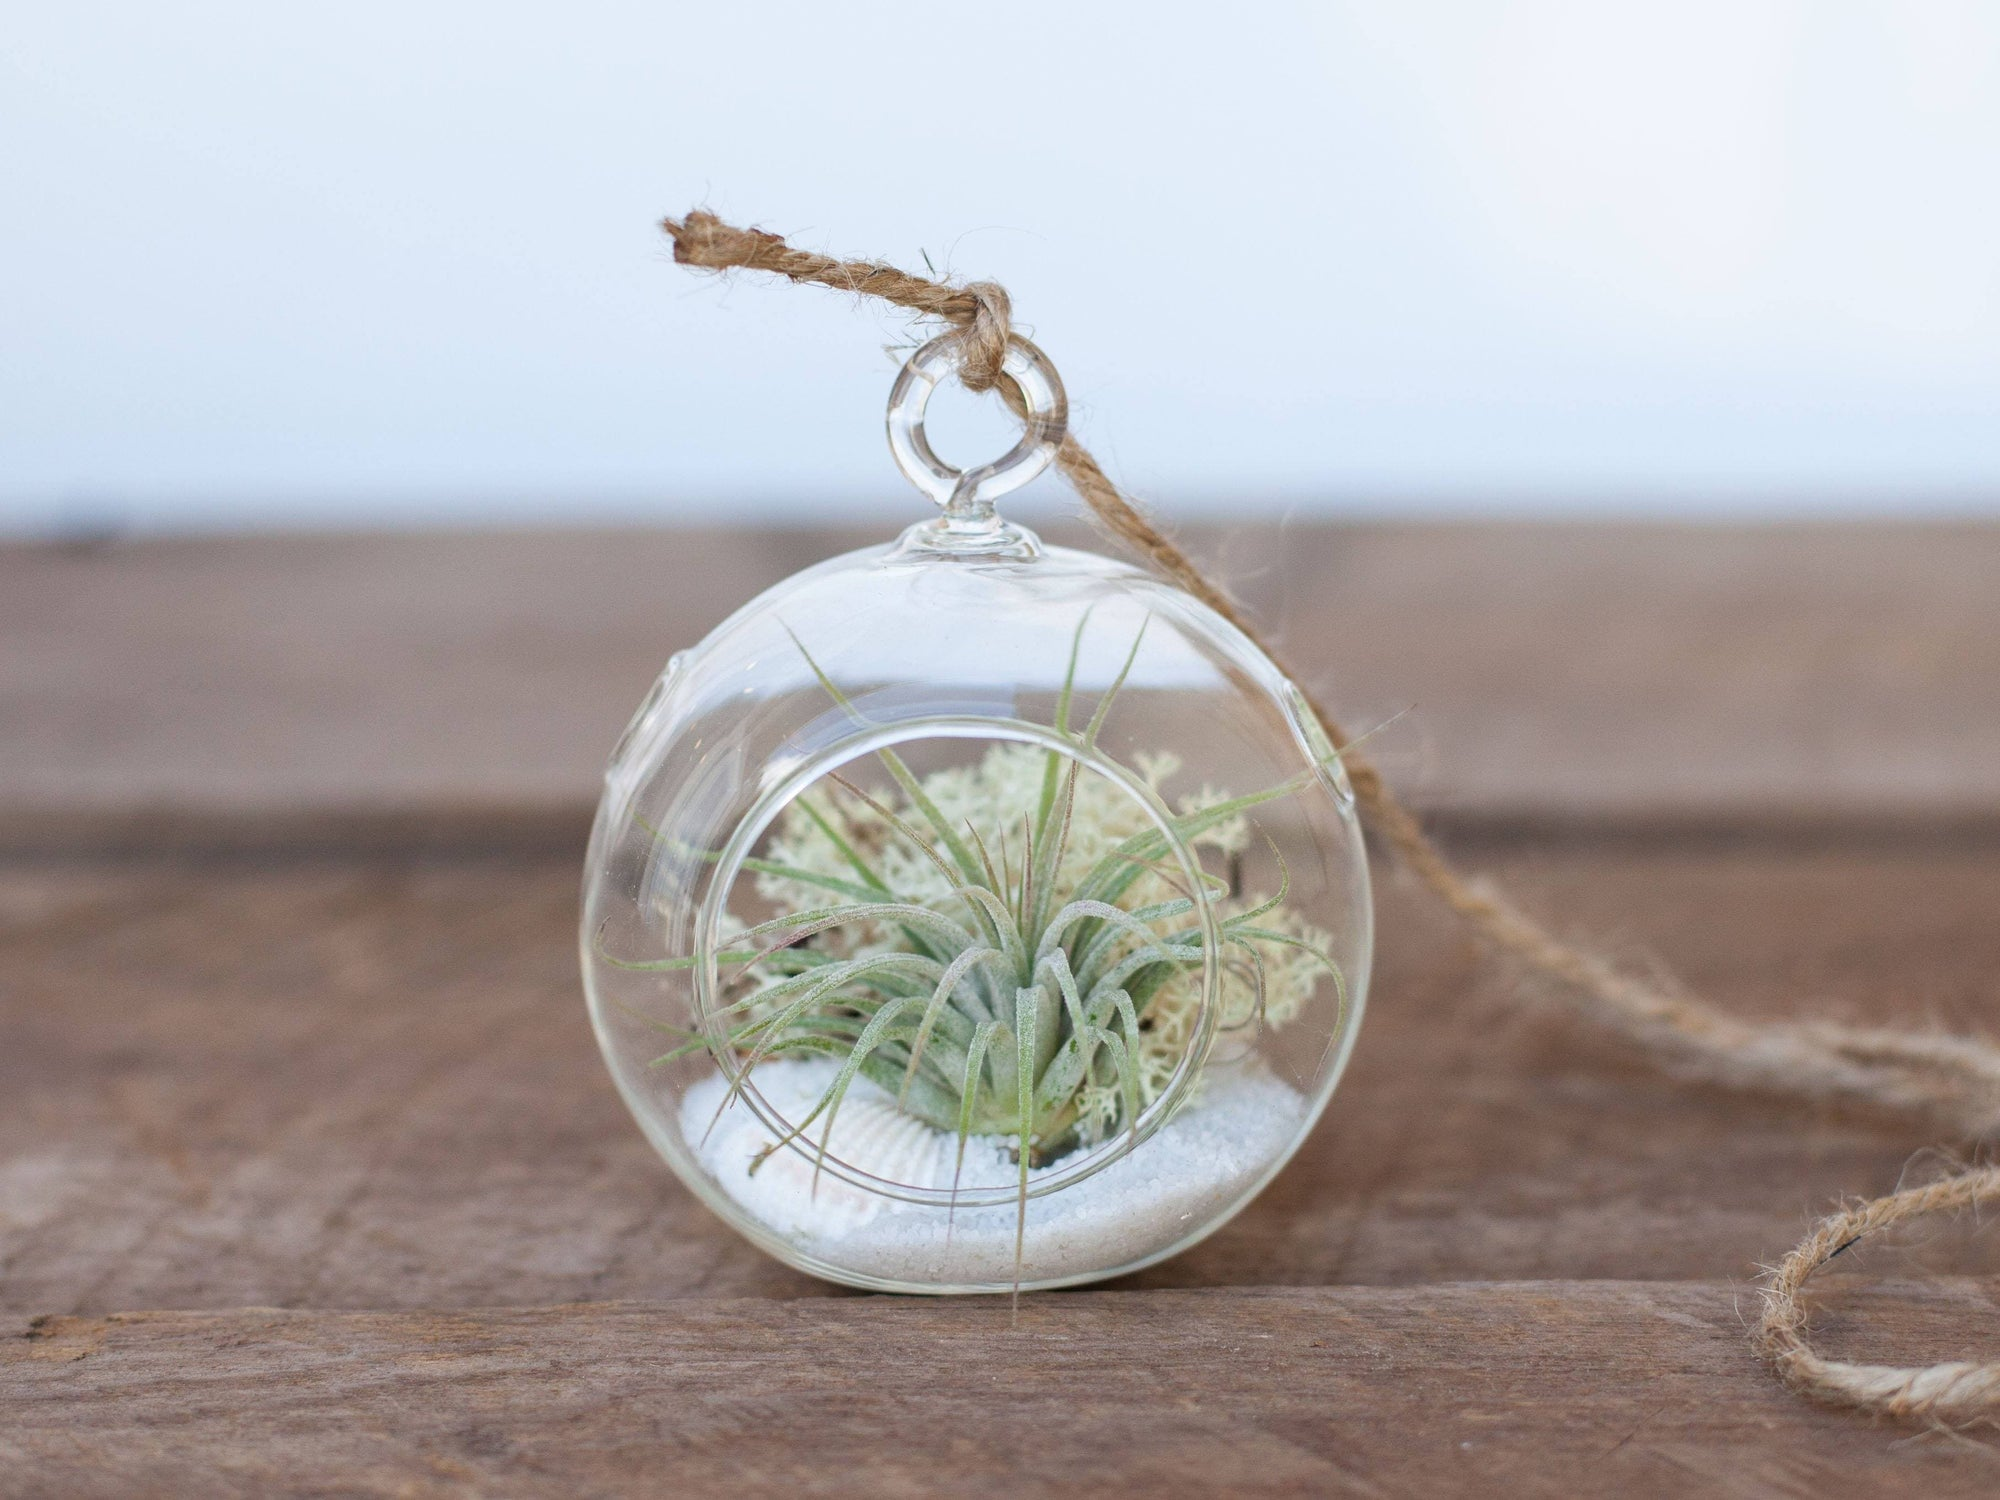 Mini Air Plant Terrarium Ornament - White Sand | Air Plant Design Studio